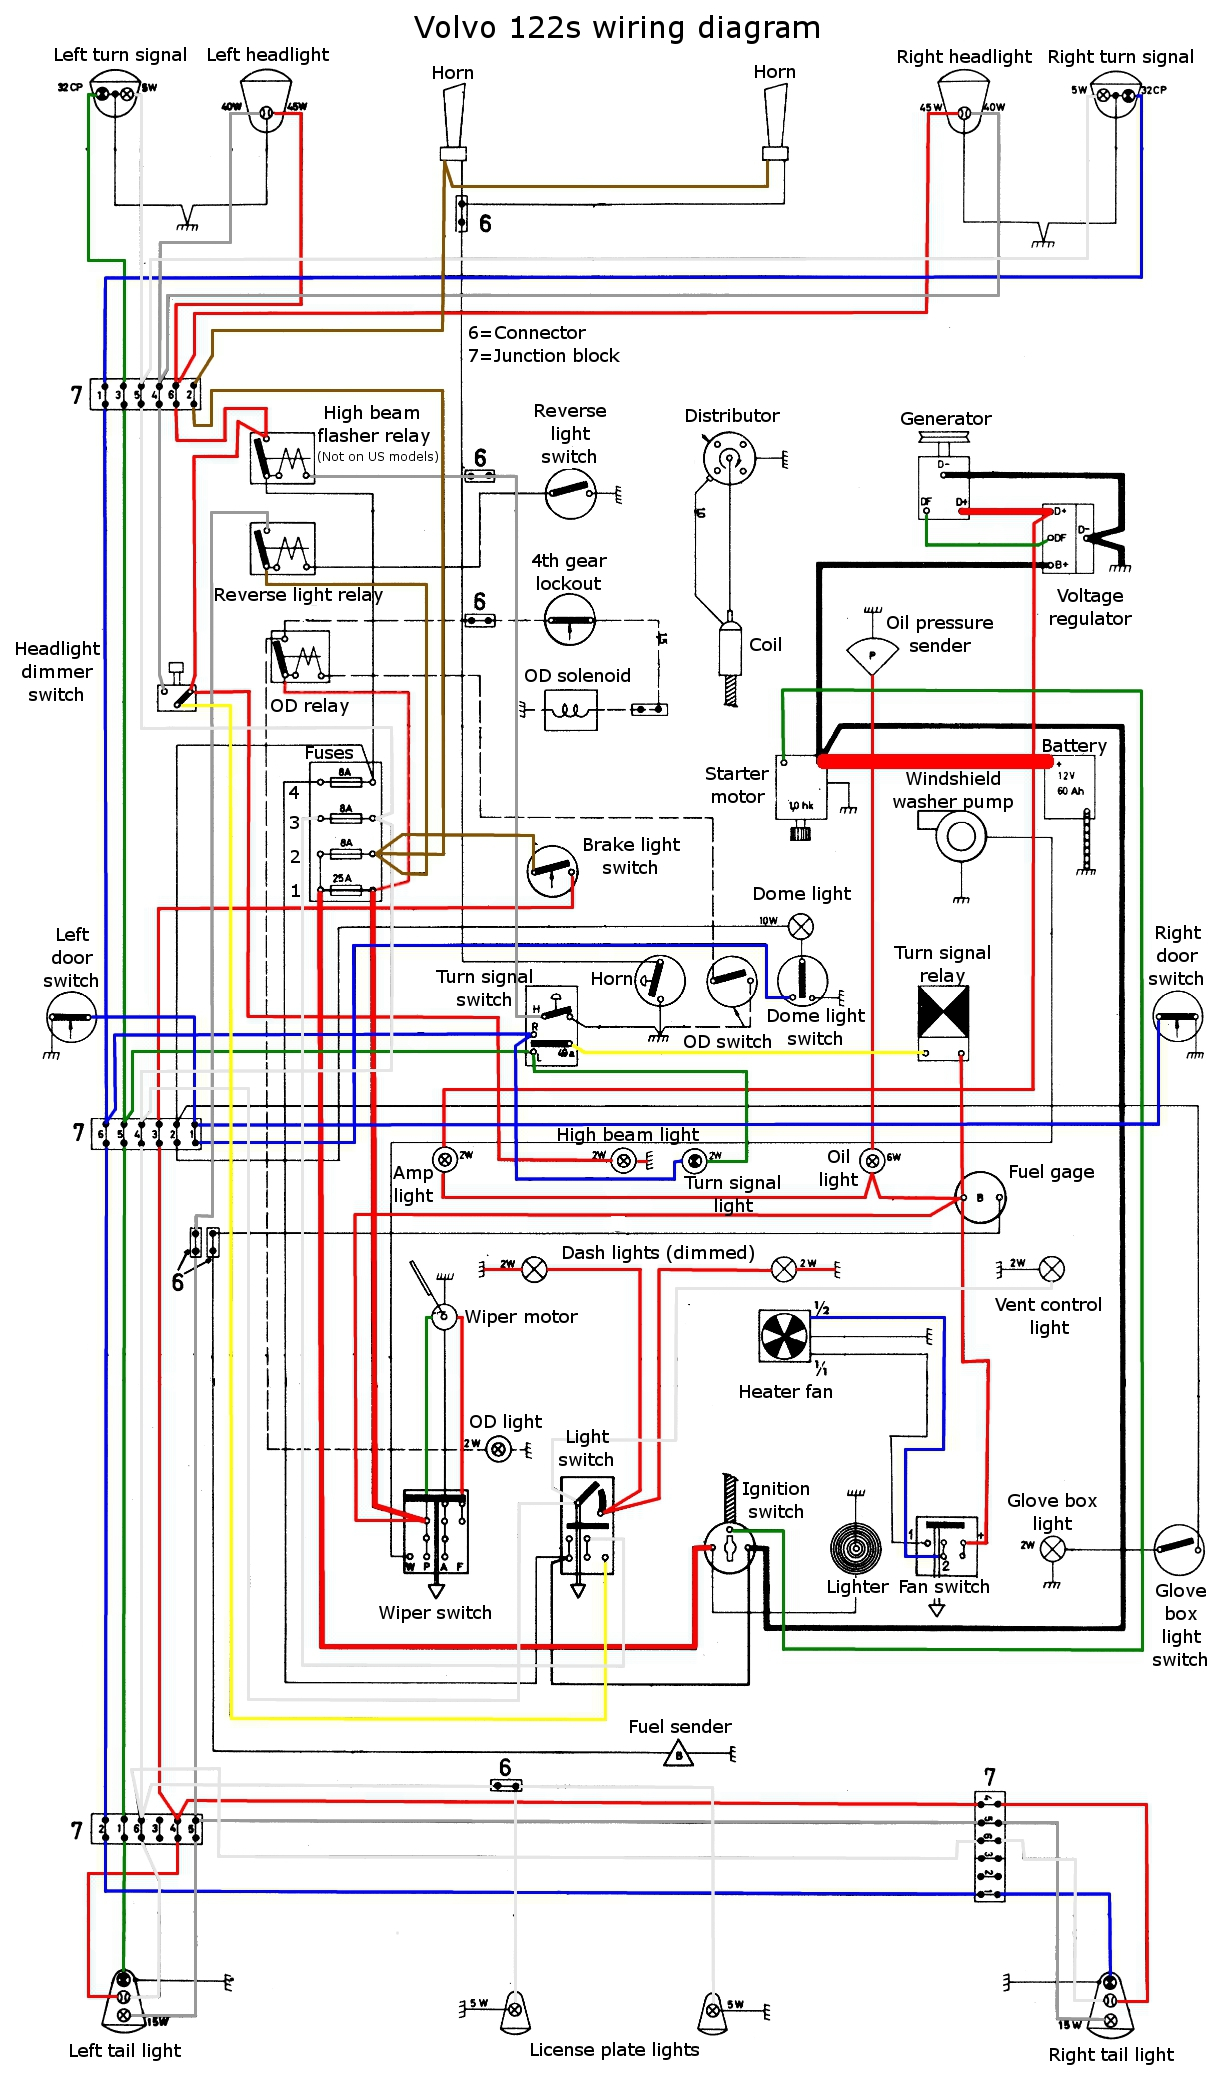 122 wiring diagram color wiring gremlins Model T Radiator at honlapkeszites.co